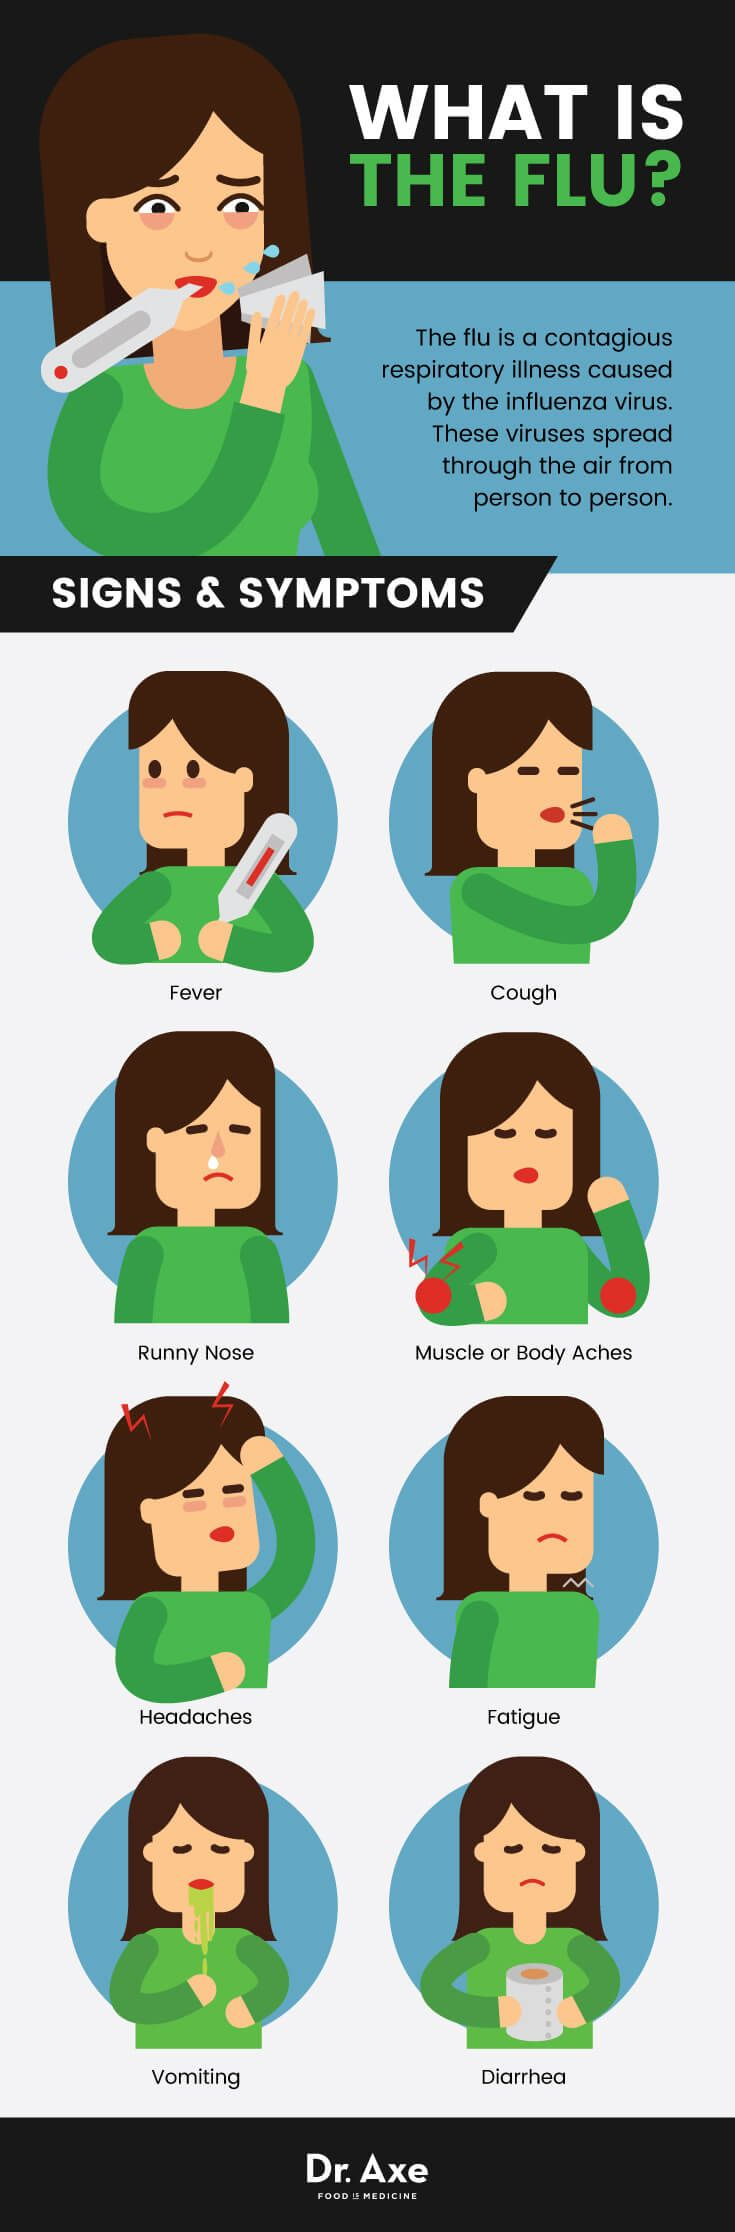 What is the flu? Flu natural remedies - Dr. Axe